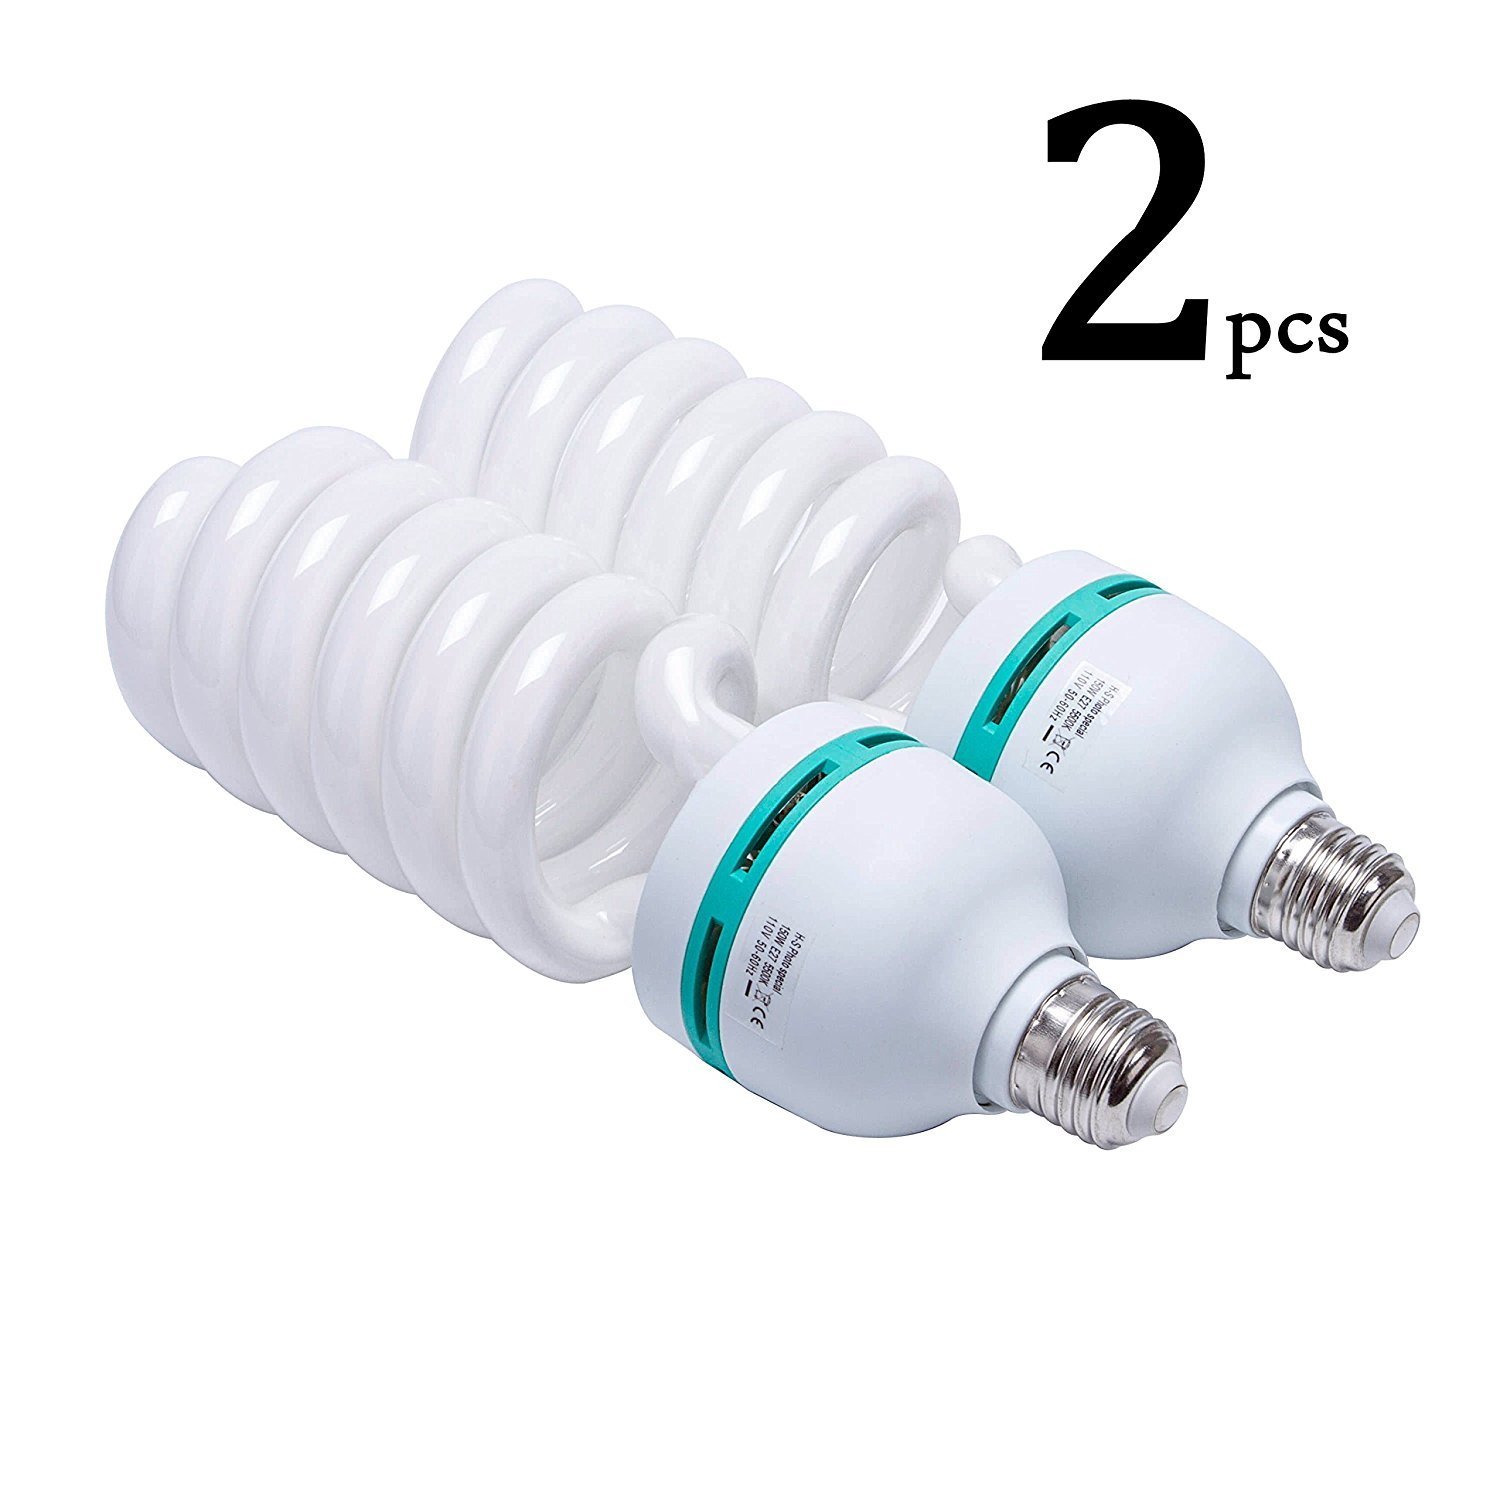 Photography Compact Fluorescent CFL Daylight Balanced Bulb with 5500K Color Temperature for Photography /& Video Studio Lighting